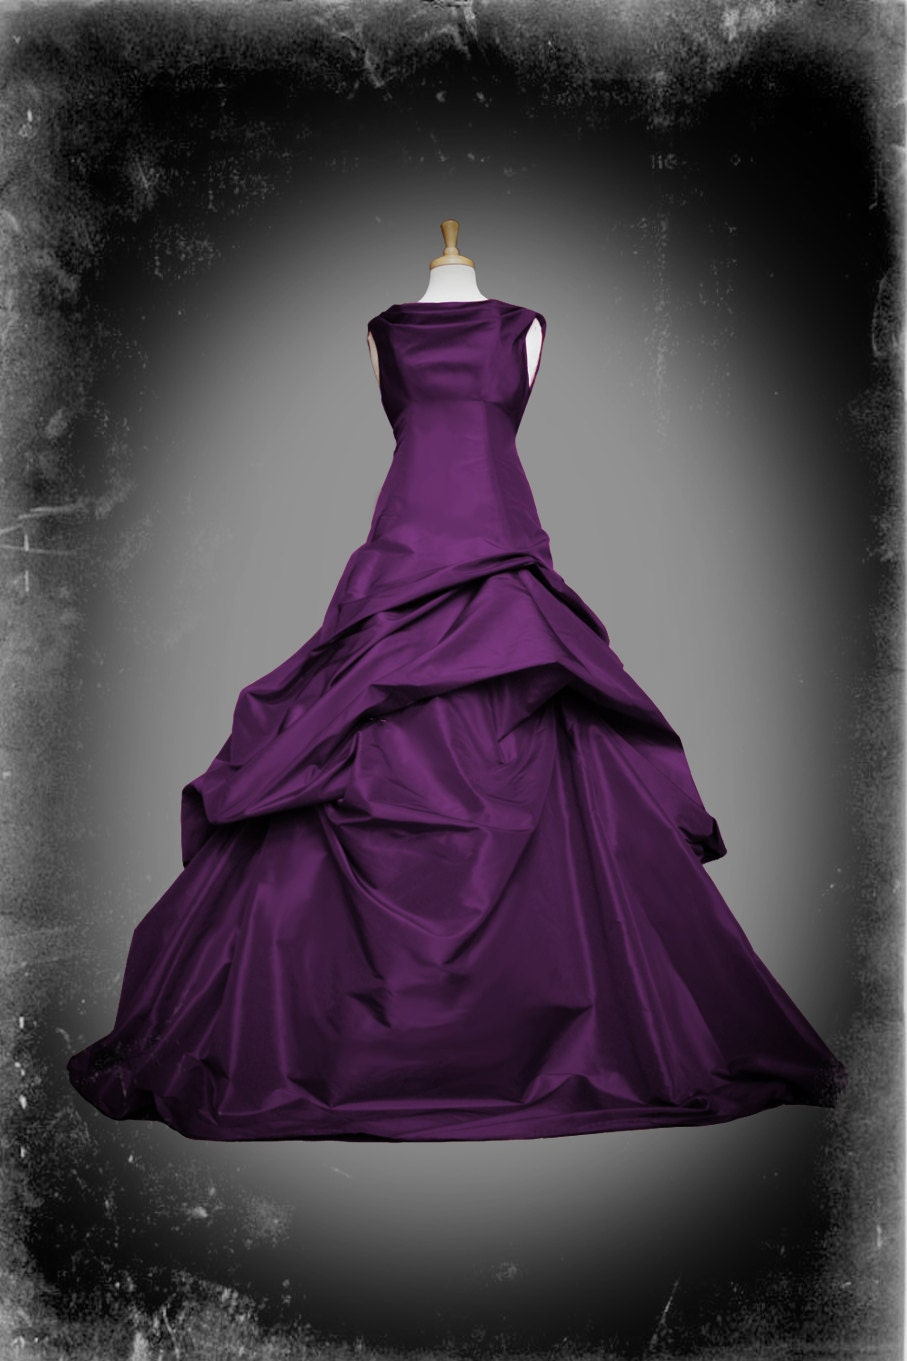 Purple wedding dress gothic ball gown casey style custom for Wedding dresses with purple